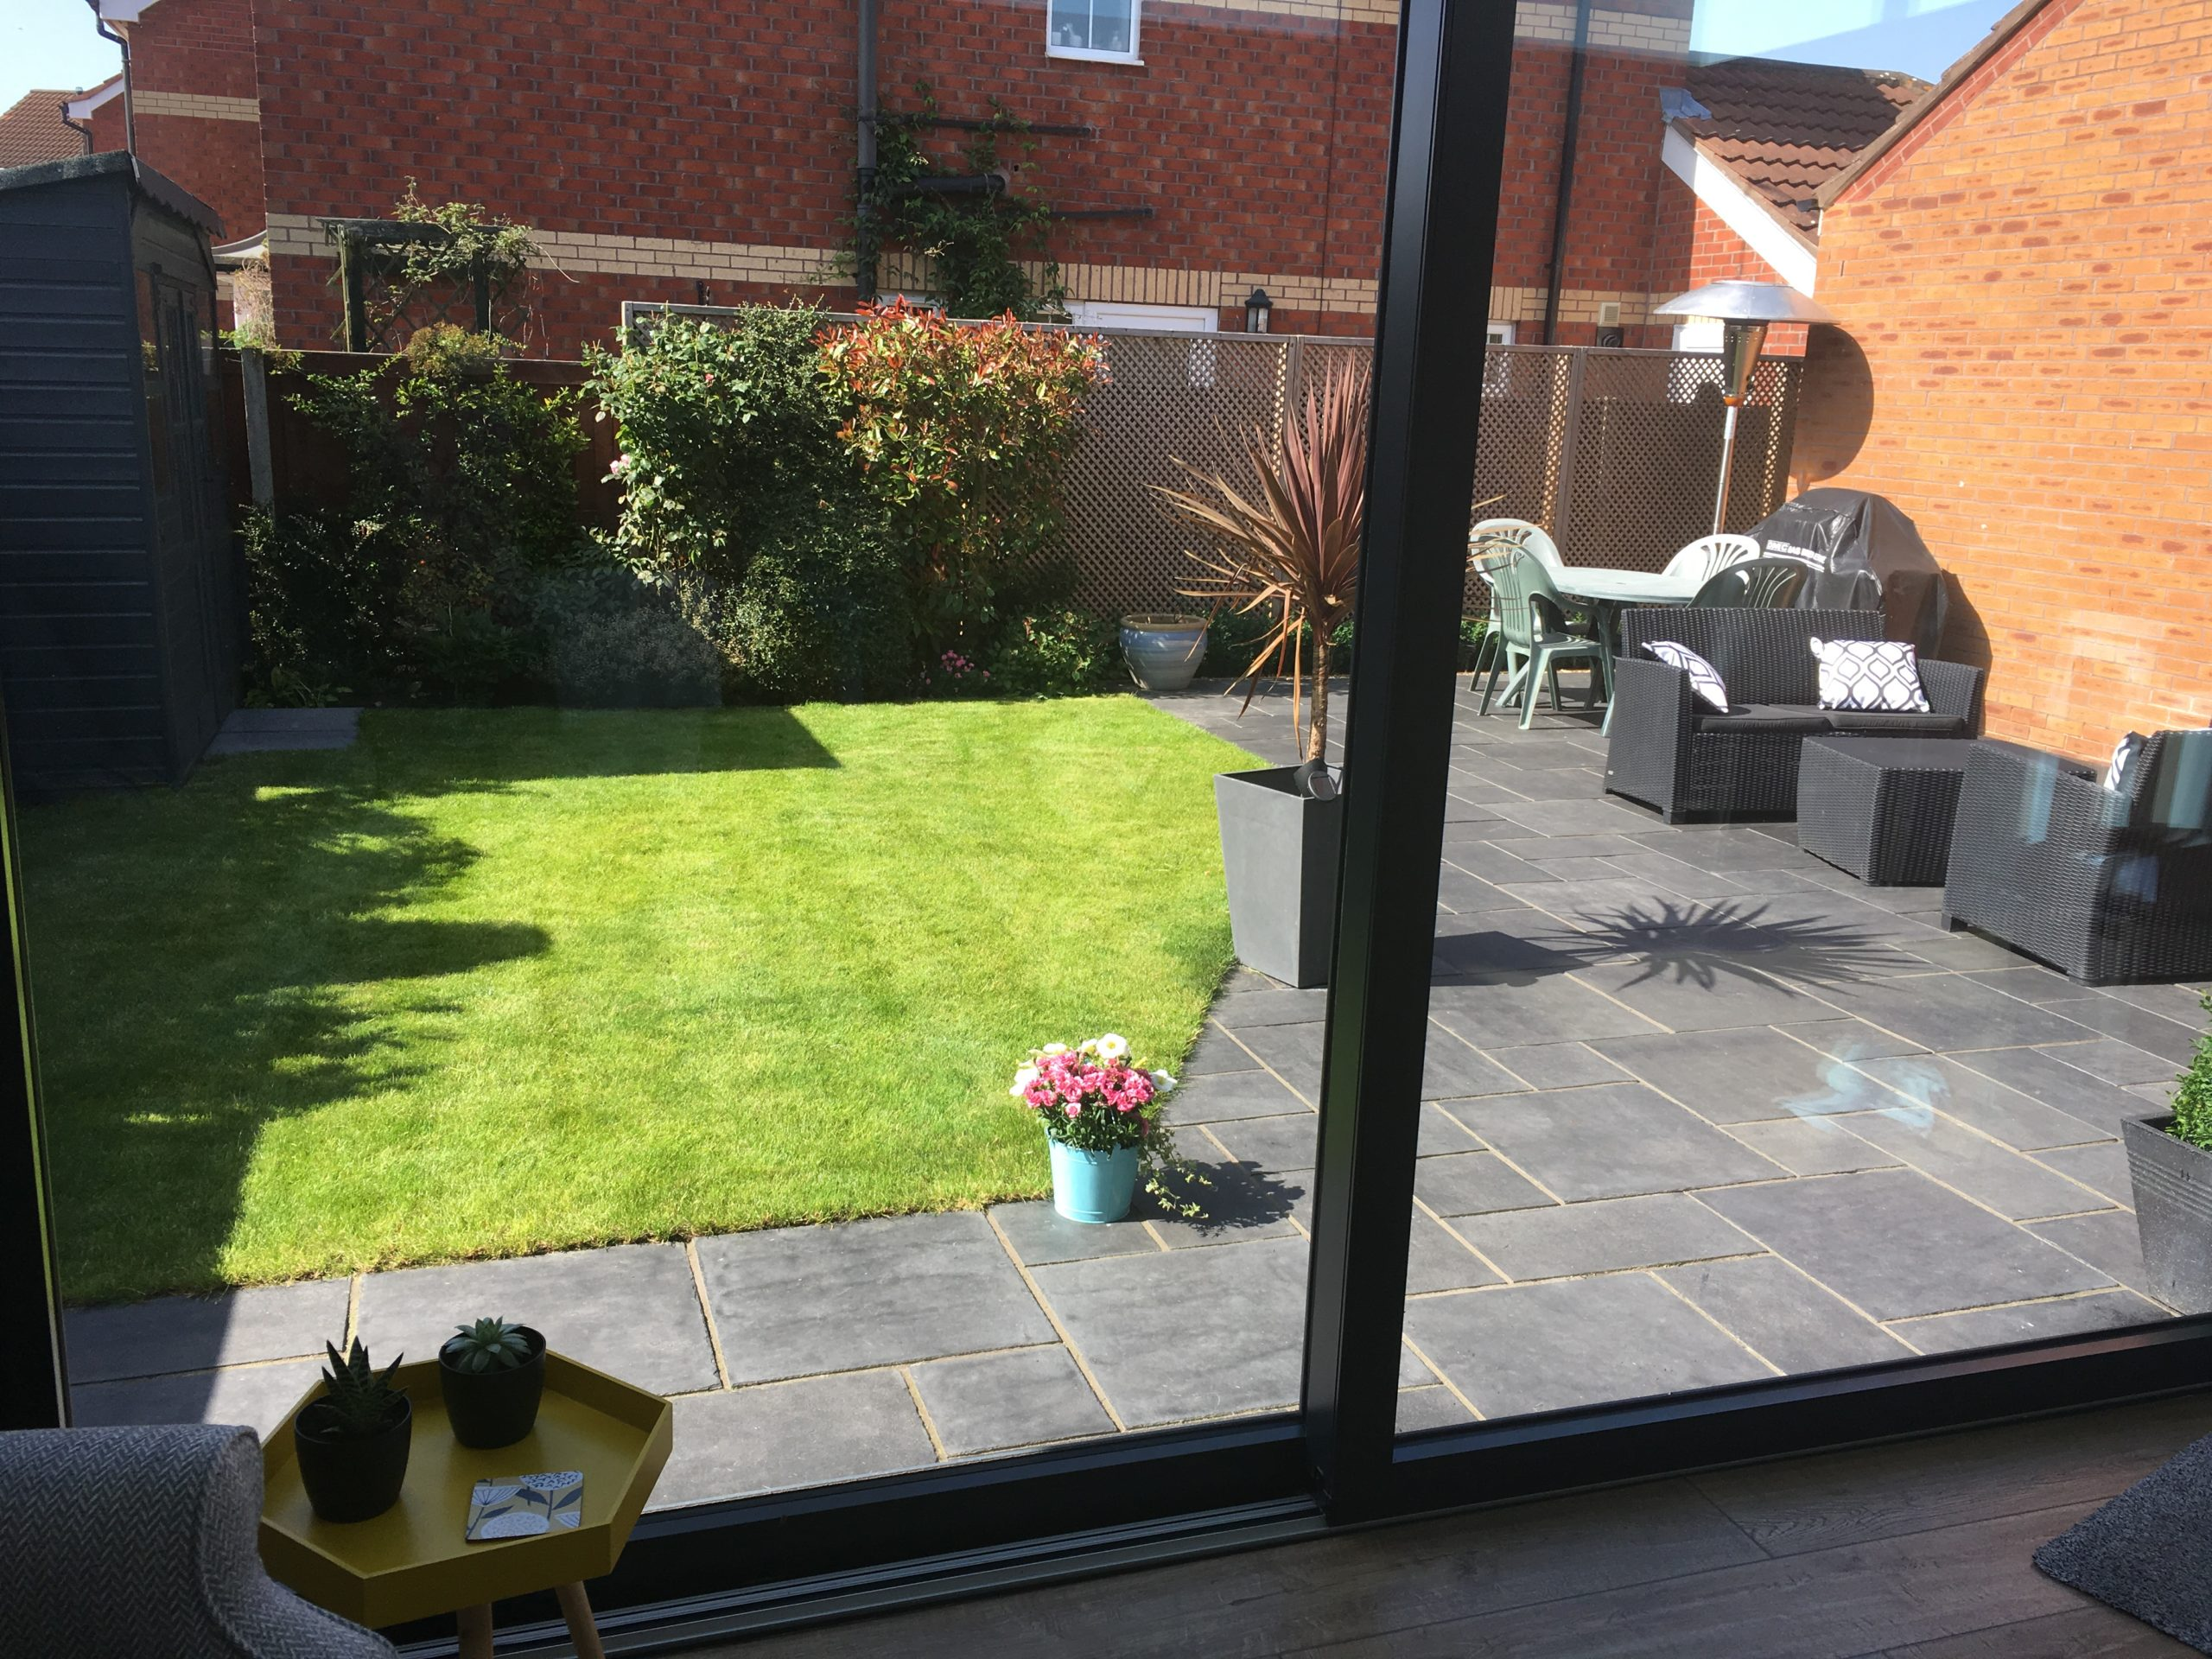 Garden view form inside single storey extension